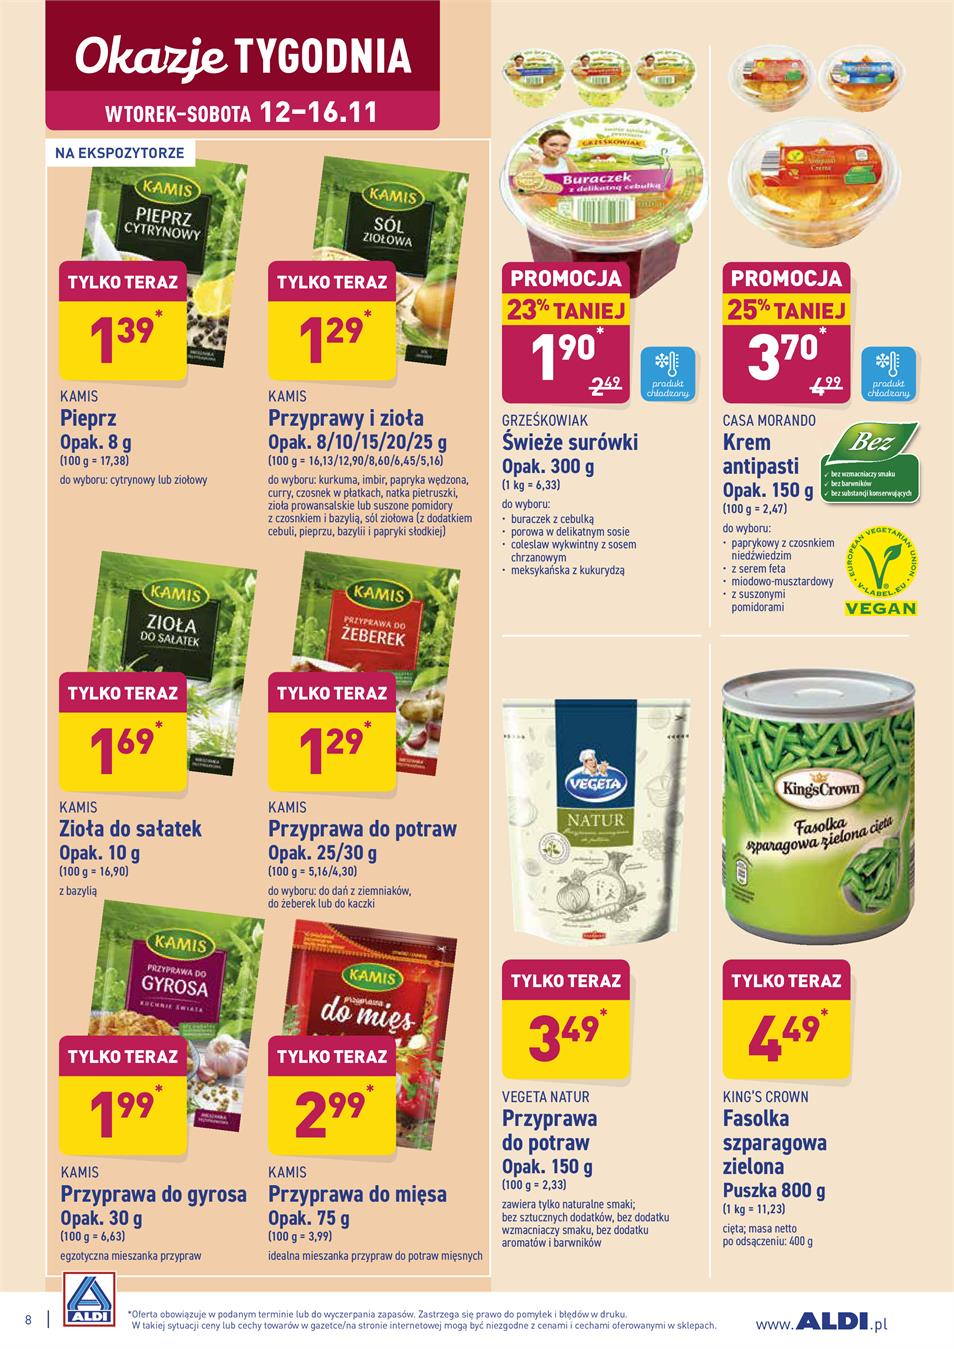 Gazetka ALDI SP Z O O  nr 8 od 2019-11-12 do 2019-11-16